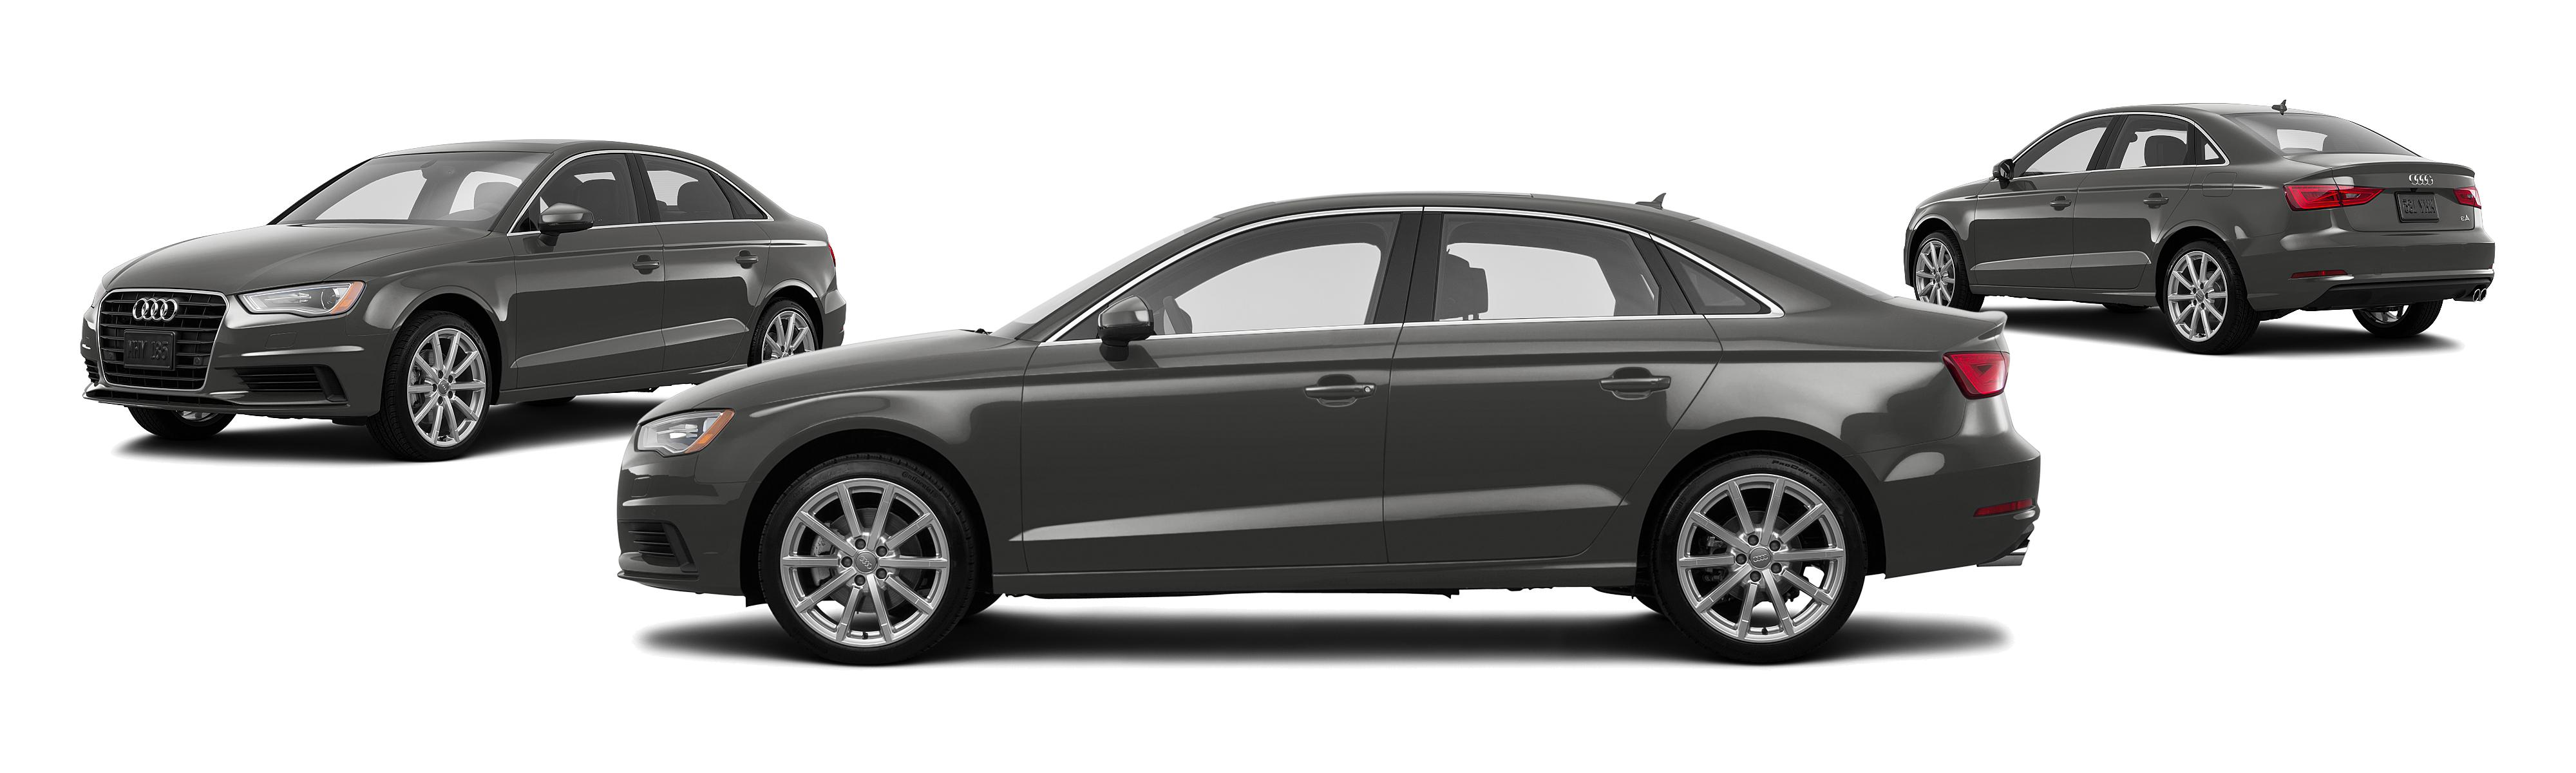 more show end automobile msrp uphill review rear news magazine audi